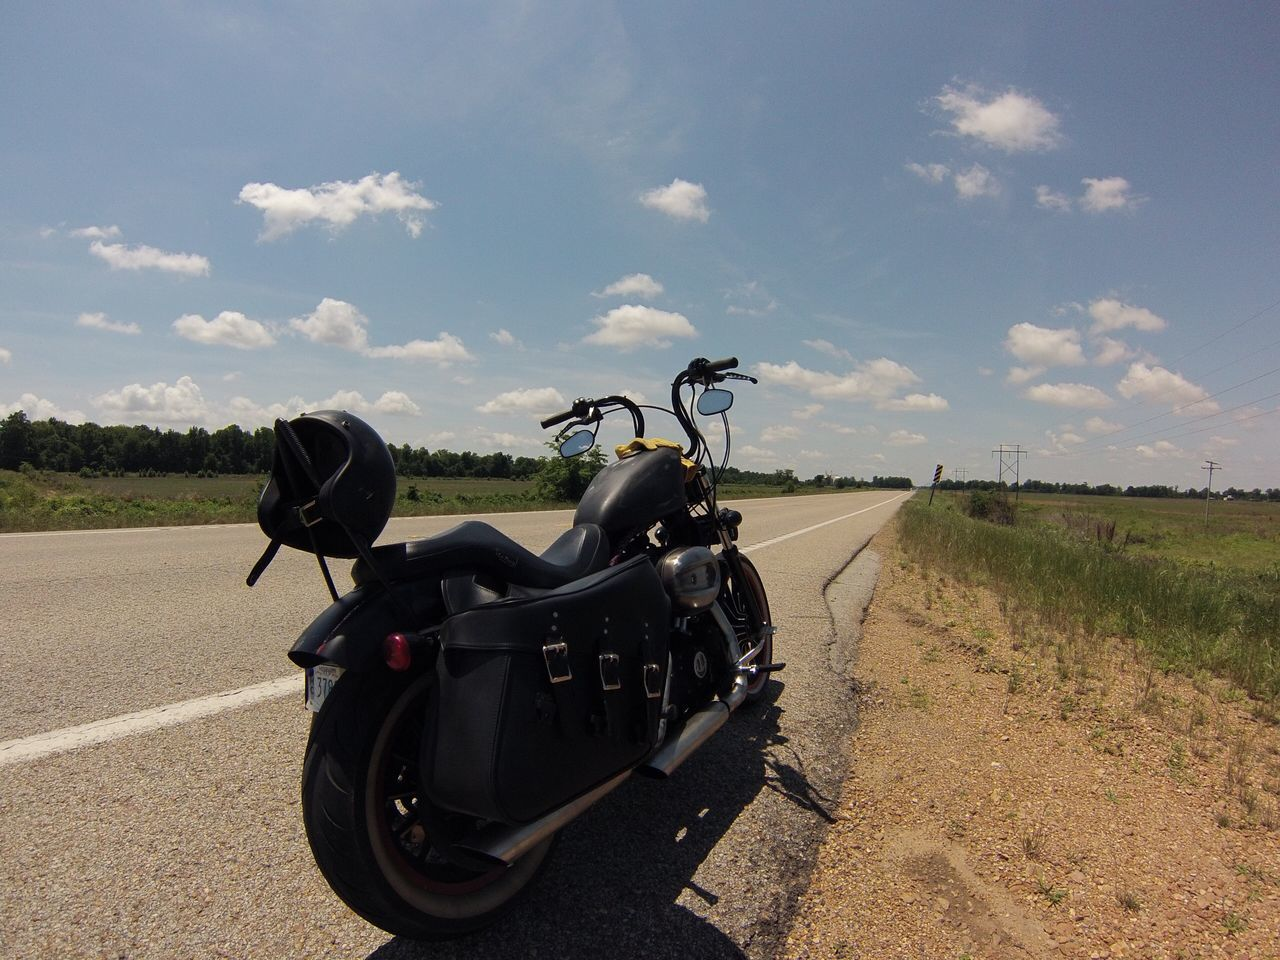 road, transportation, sky, day, field, cloud - sky, landscape, grass, outdoors, motorcycle, land vehicle, nature, no people, beauty in nature